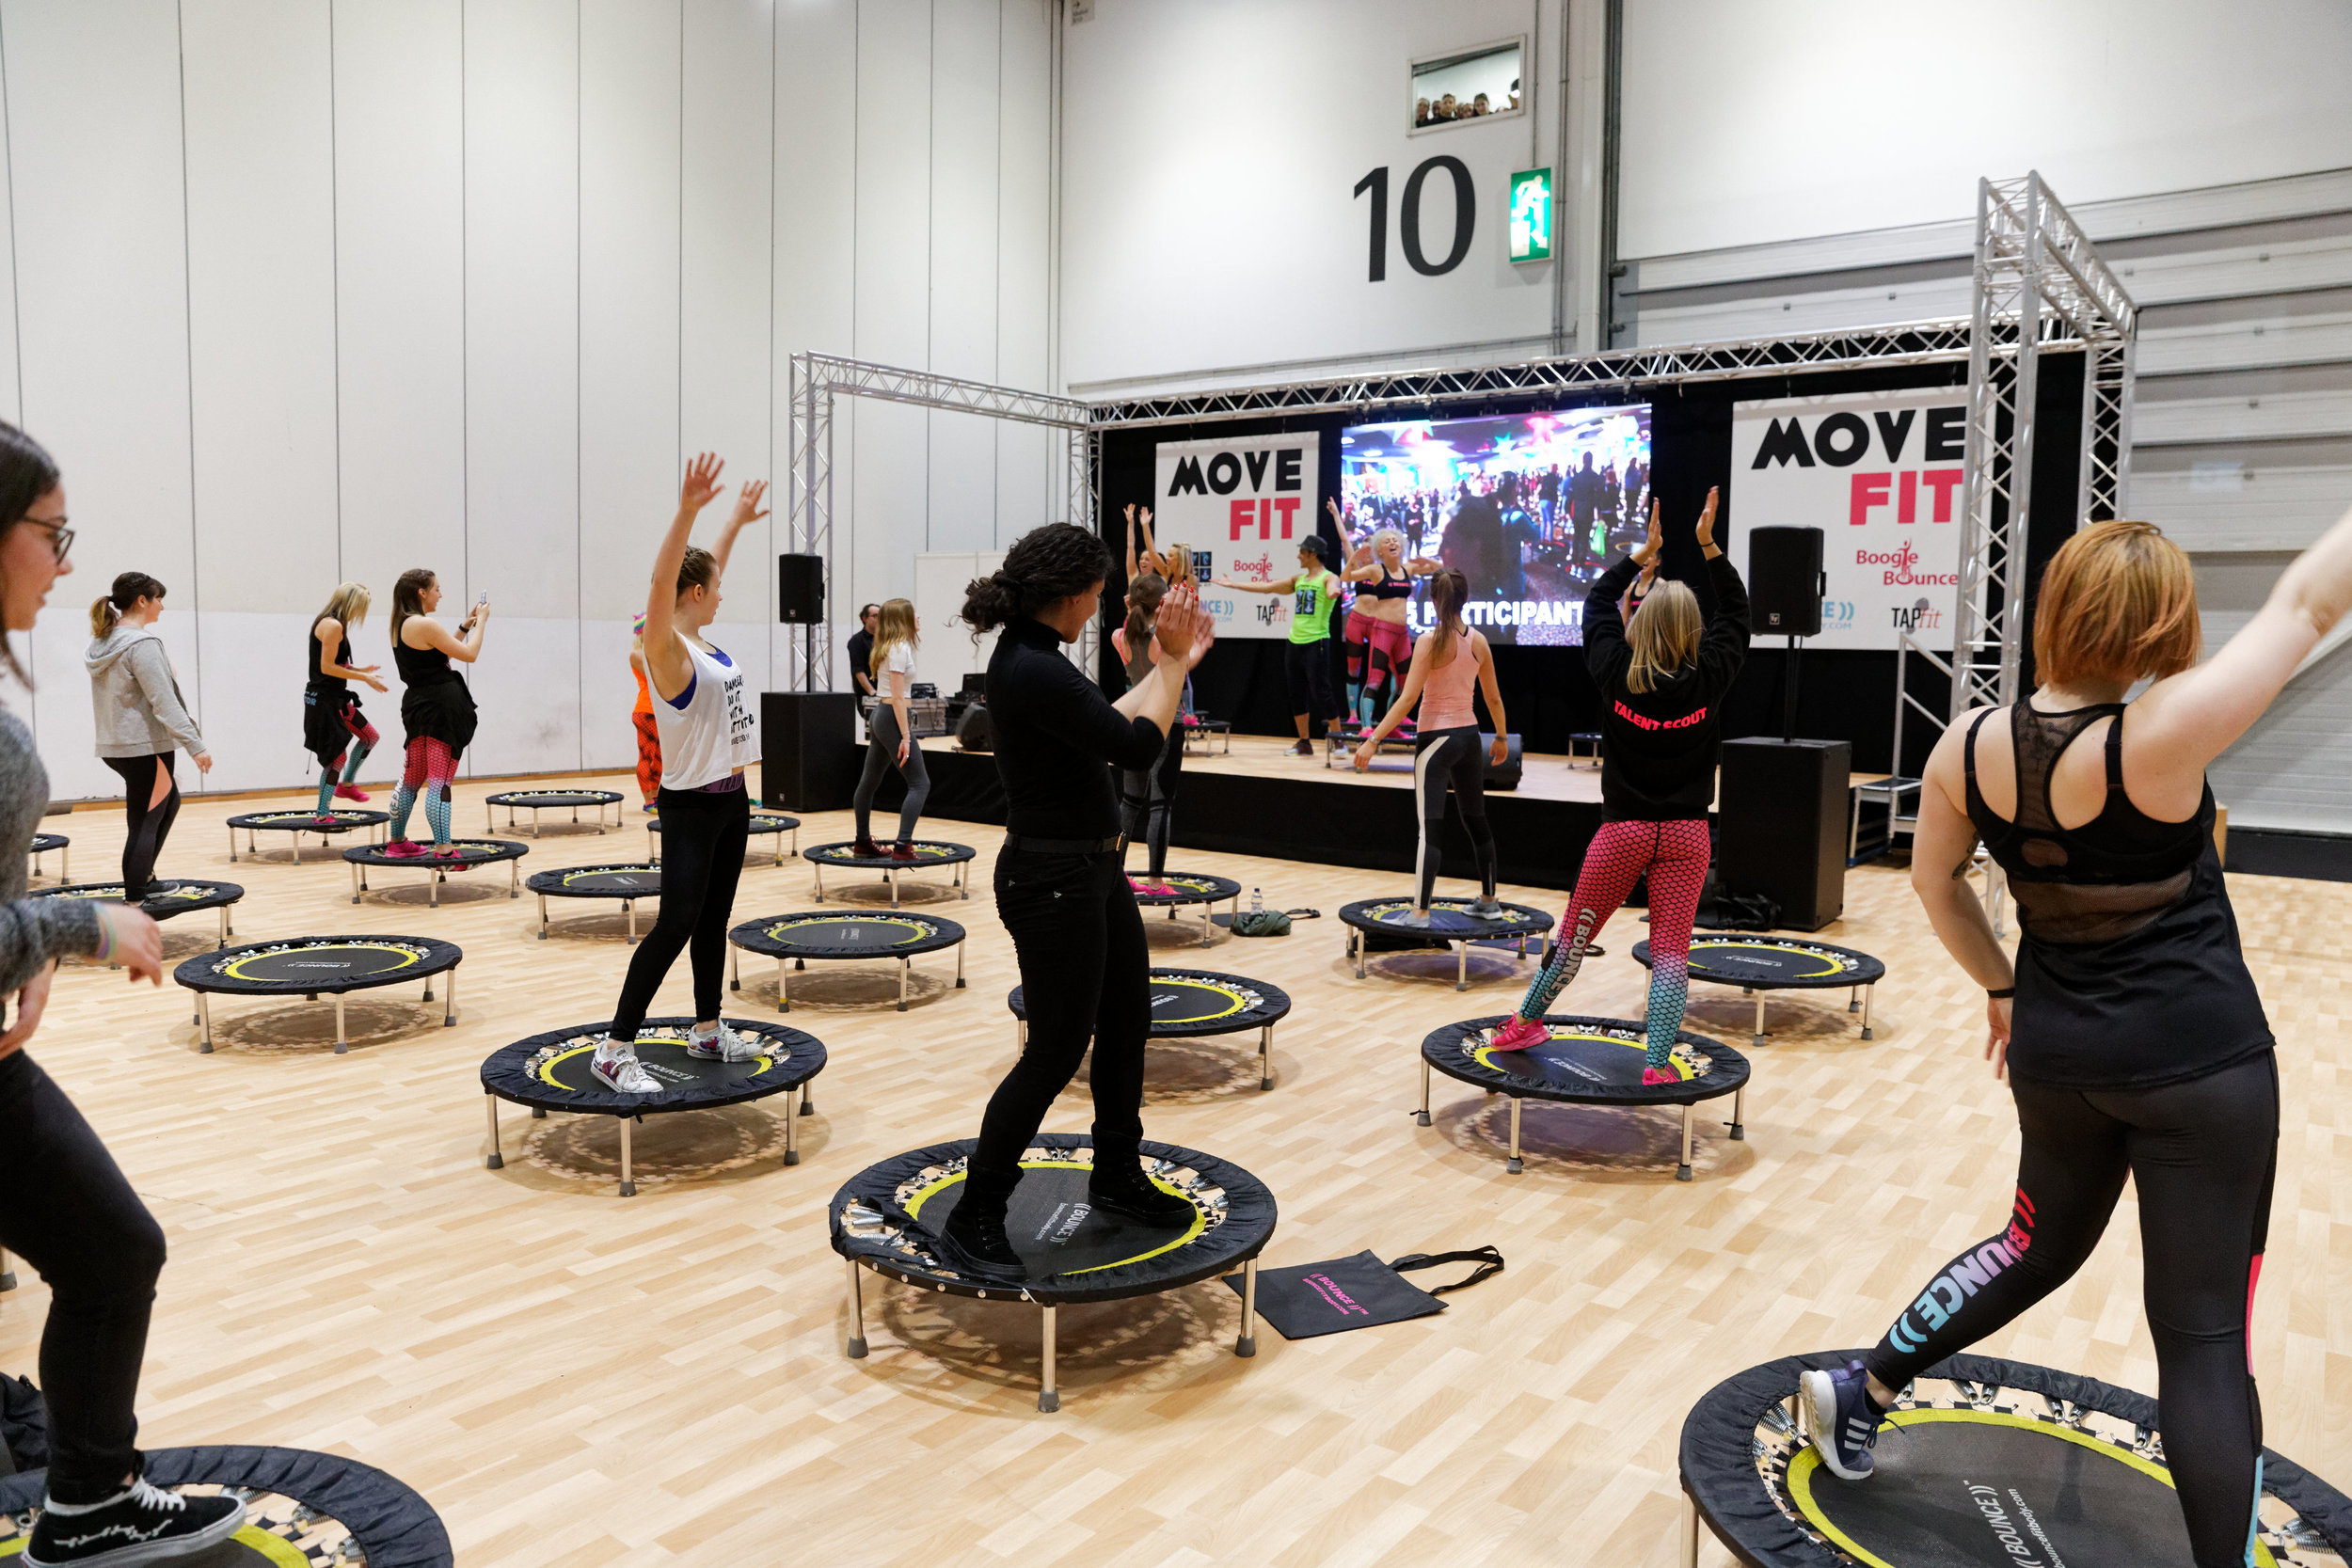 MOVE IT SHOW   We are currently working in collaboration with  MOVE IT  - The U.K's Biggest Dance & Performing Arts Event happening on the 8th-10th March 2019 at the ExCel London.  If you are interested in getting your brand in front of 29,000 unique visitors with the key demographic being 16 - 24 year olds then we would like to hear from you!